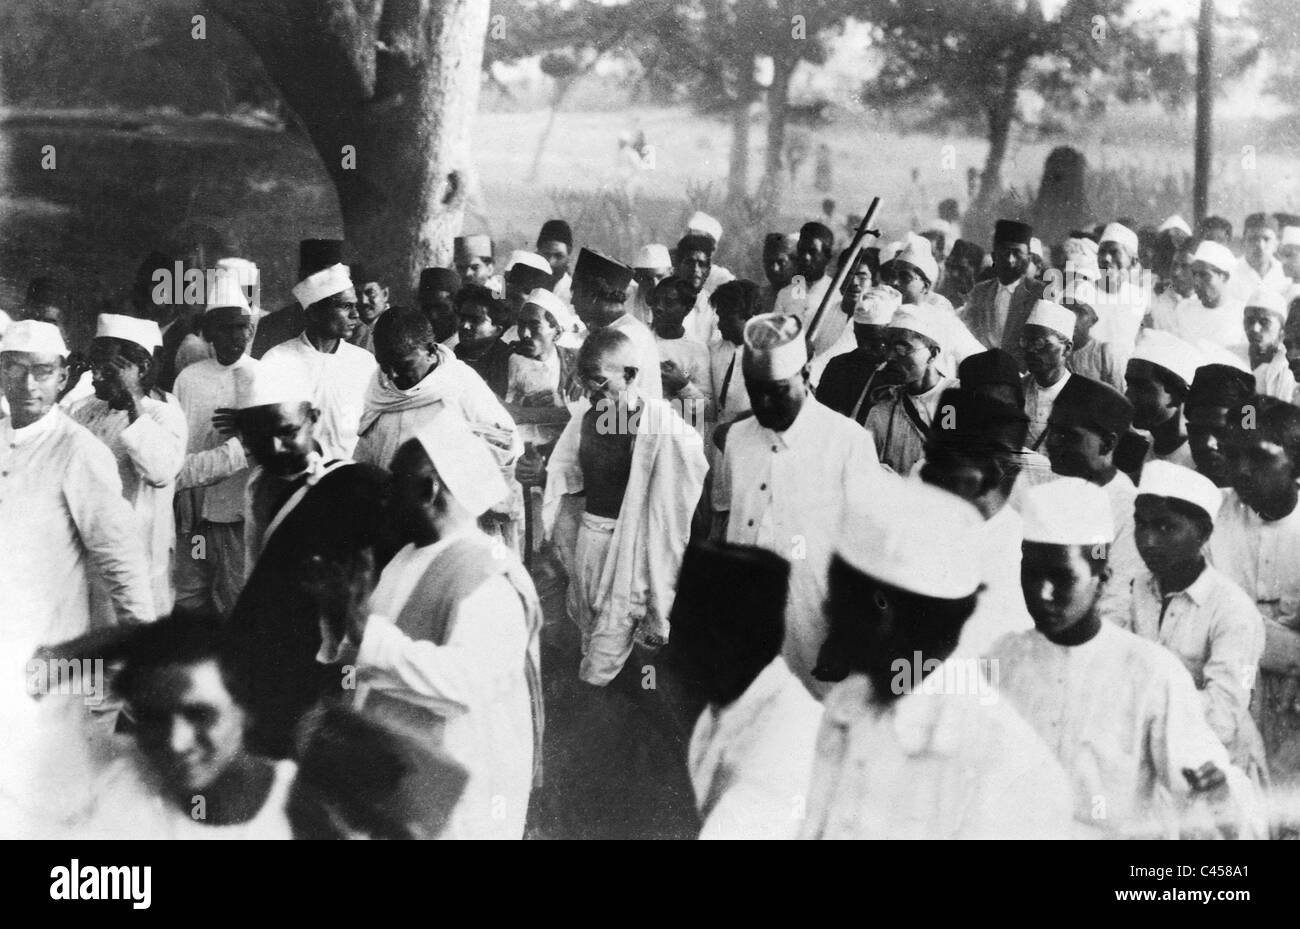 ghandi salt march When the british empire controlled india, it used legislation like the salt tax to control the population learn how gandhi's non-violent salt march triggered a wave of protest leading to indian independence in this podcast from howstuffworkscom.